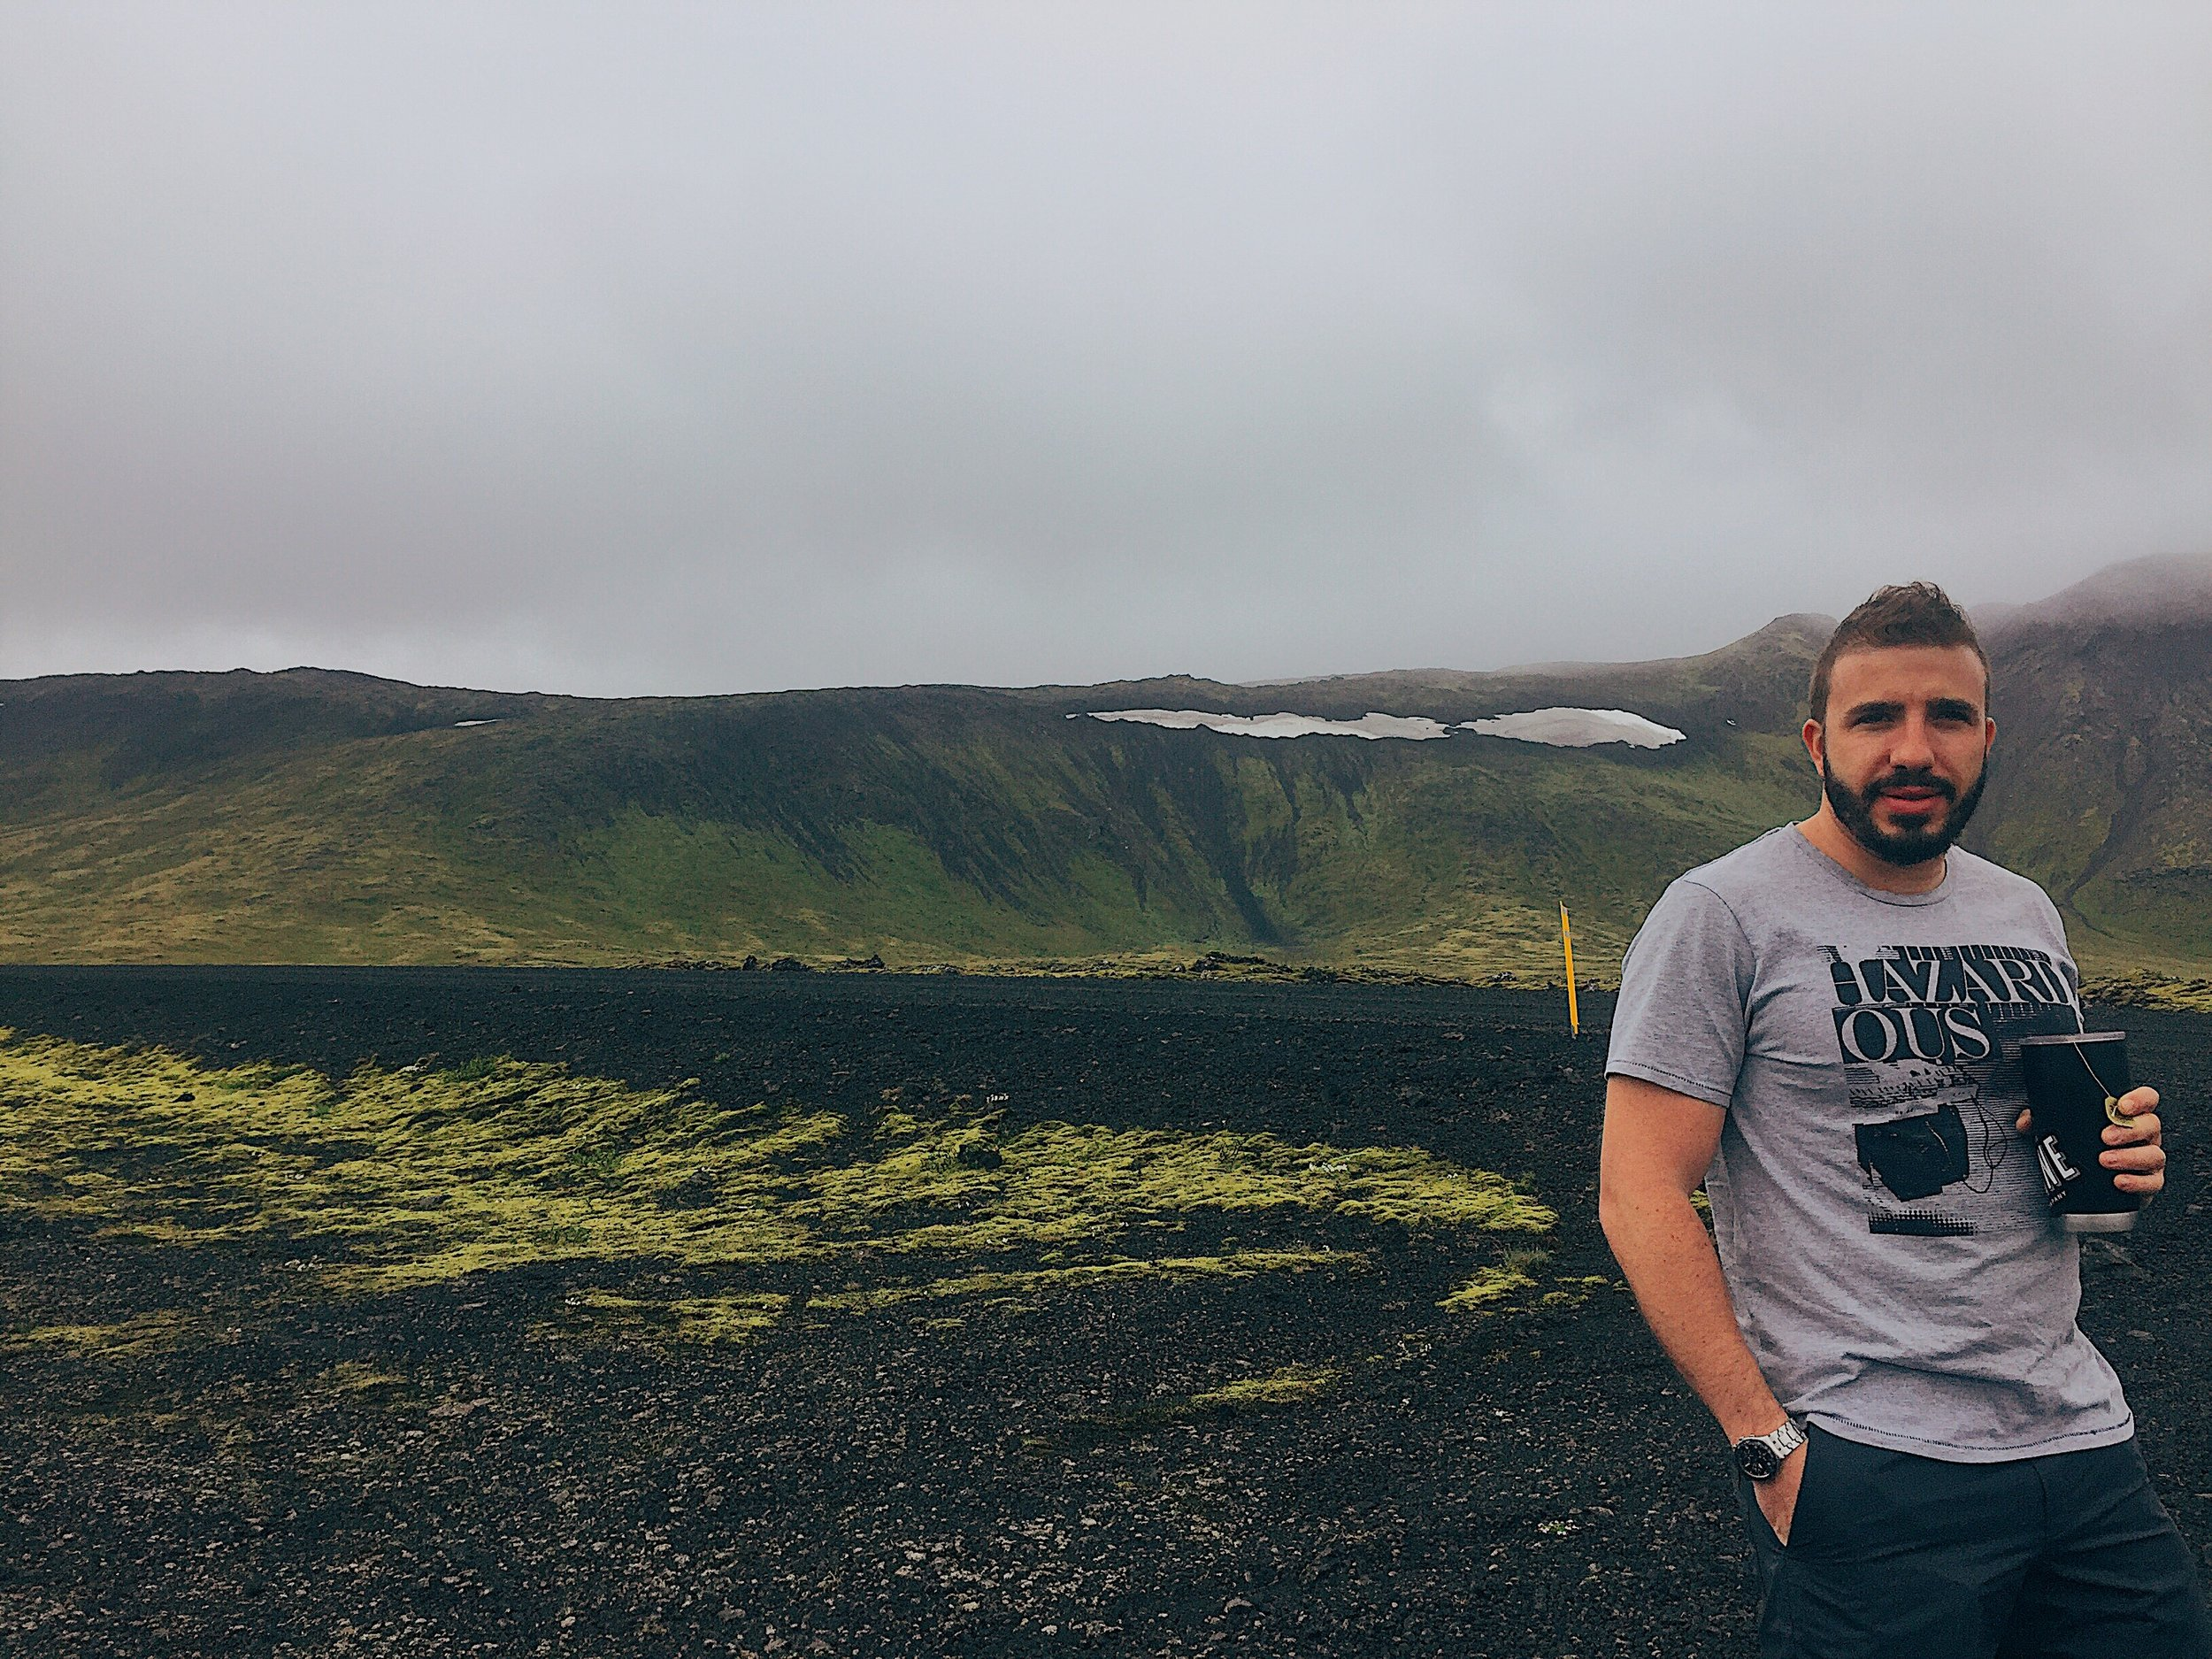 Chilling on a volcano!